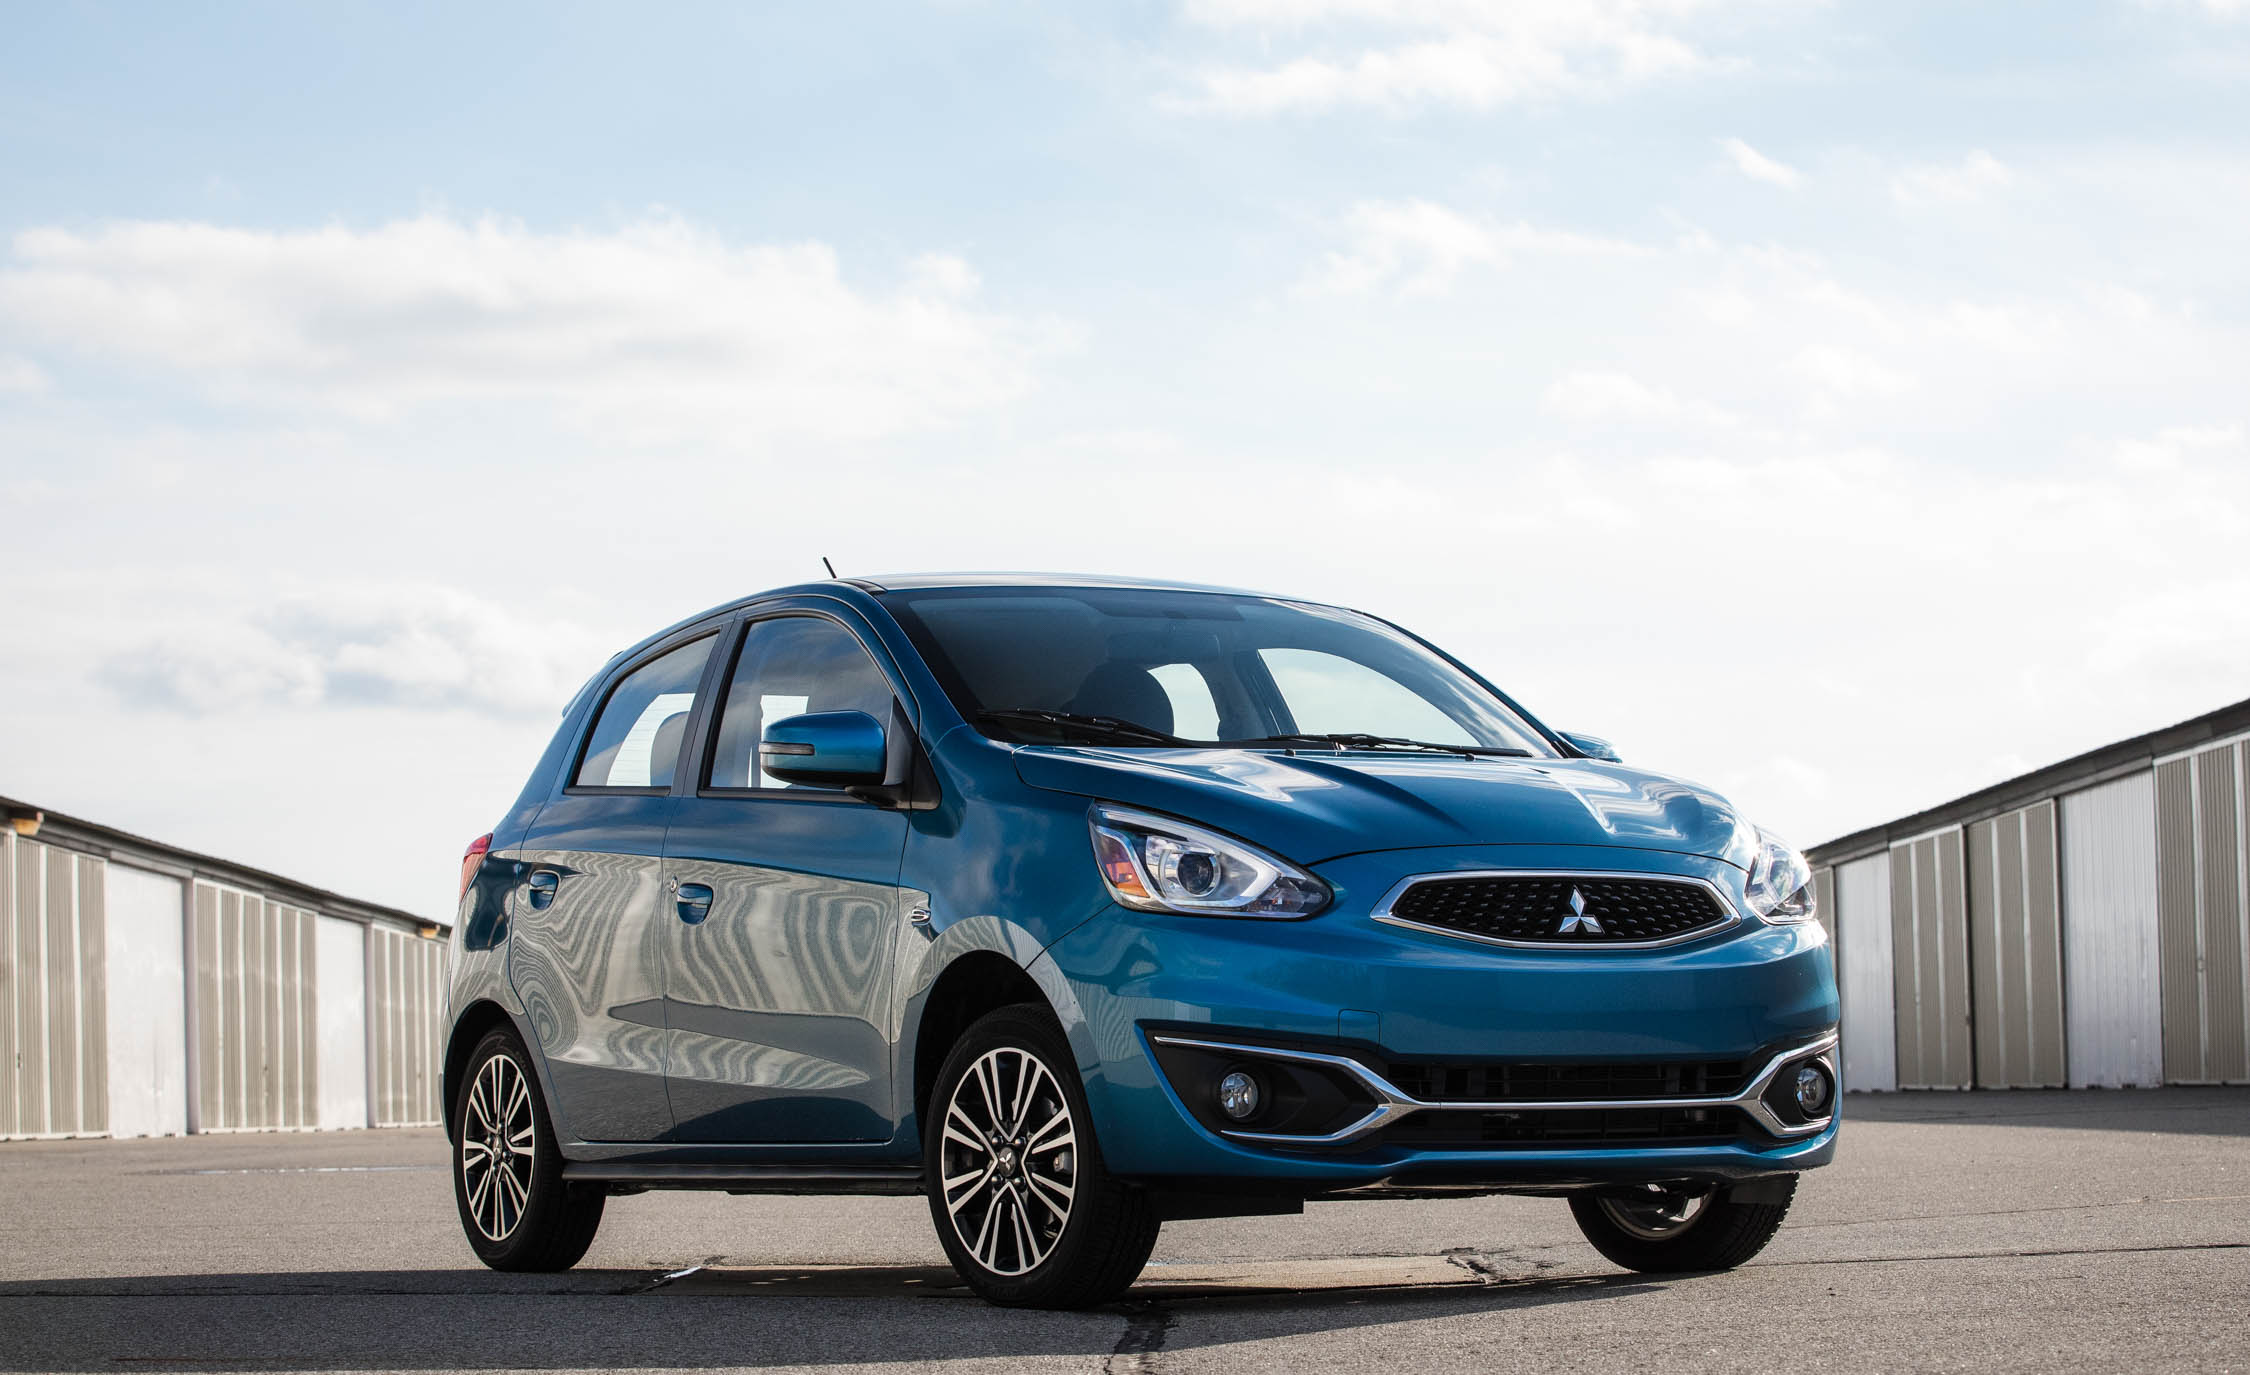 2017 Mitsubishi Mirage GT (View 8 of 21)